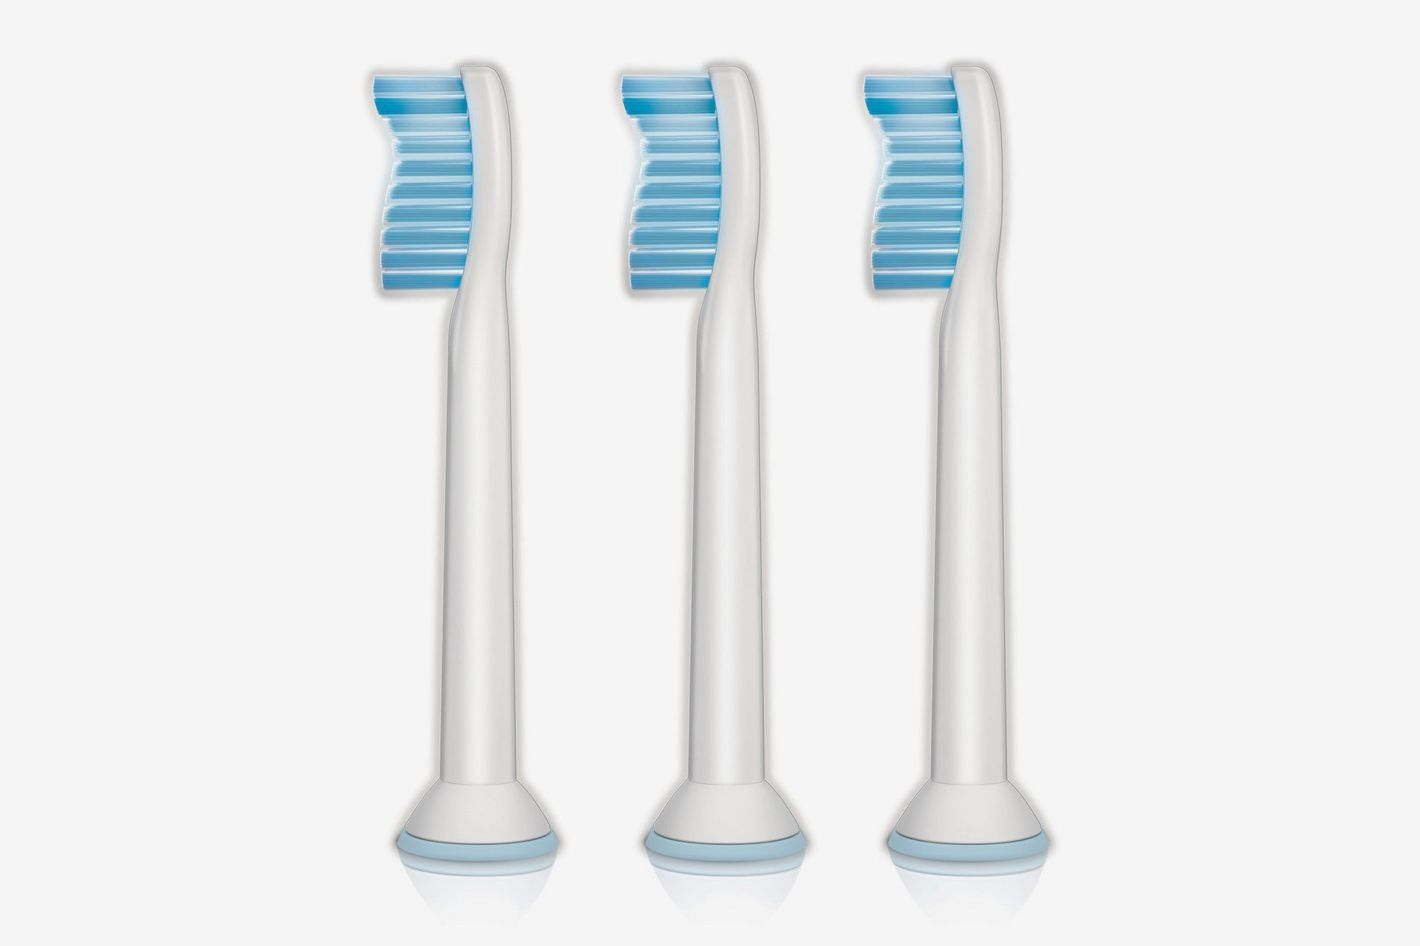 Philips Sonicare Sensitive Replacement Brush Heads